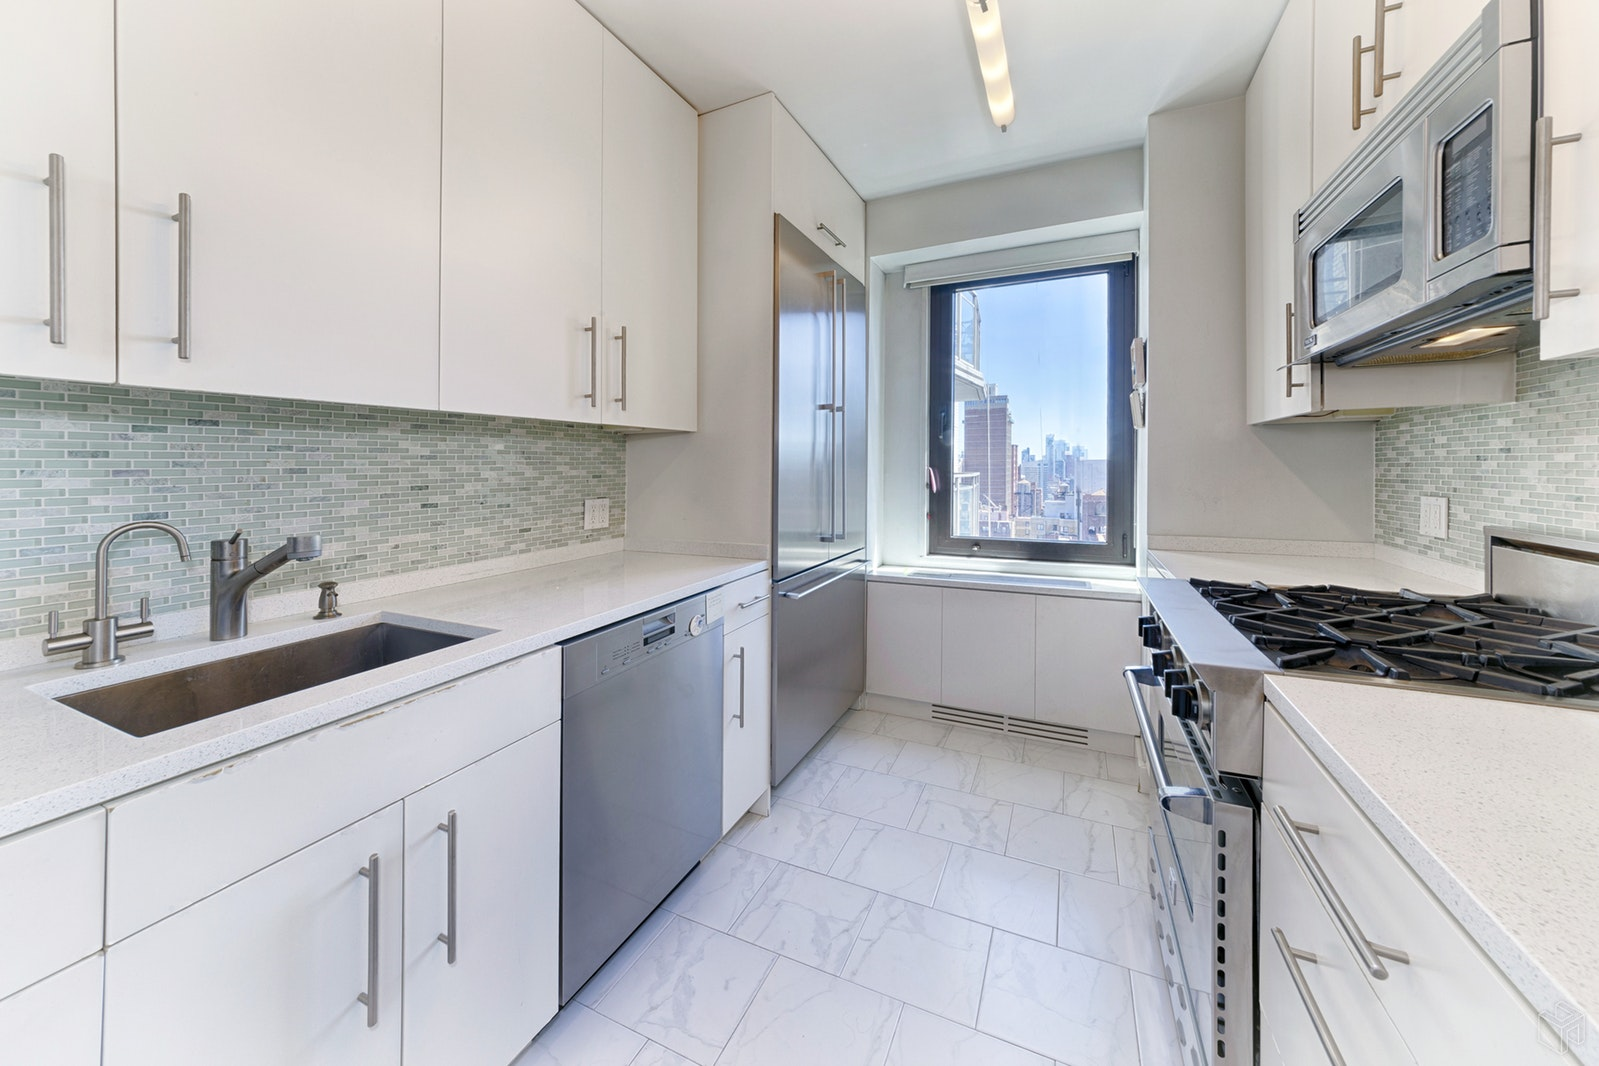 303 East 57th Street 23b, Midtown East, NYC, 10022, $725,000, Property For Sale, Halstead Real Estate, Photo 2